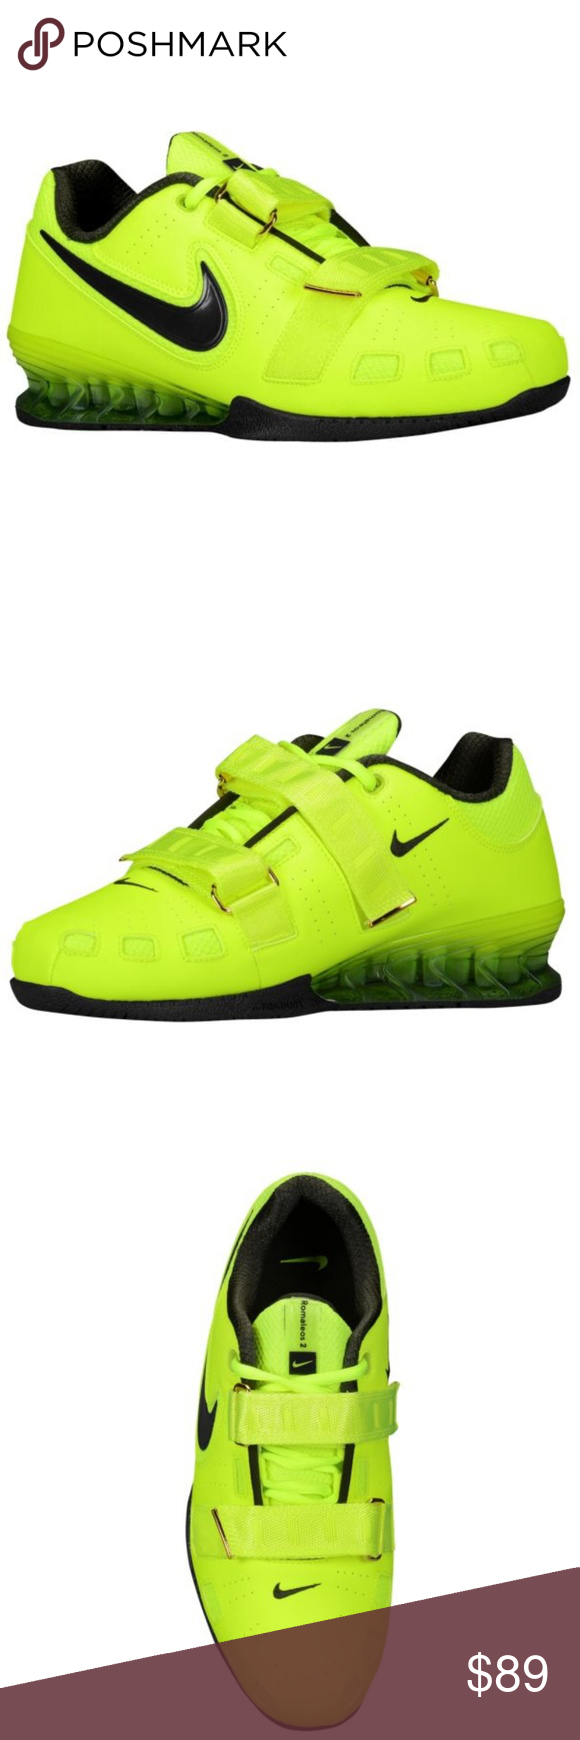 online store eadea de683 Nike Mens Romaleos II Weightlifting Shoes Volt 11 Nike Romaleos II Power  Lifting crossfit cross training